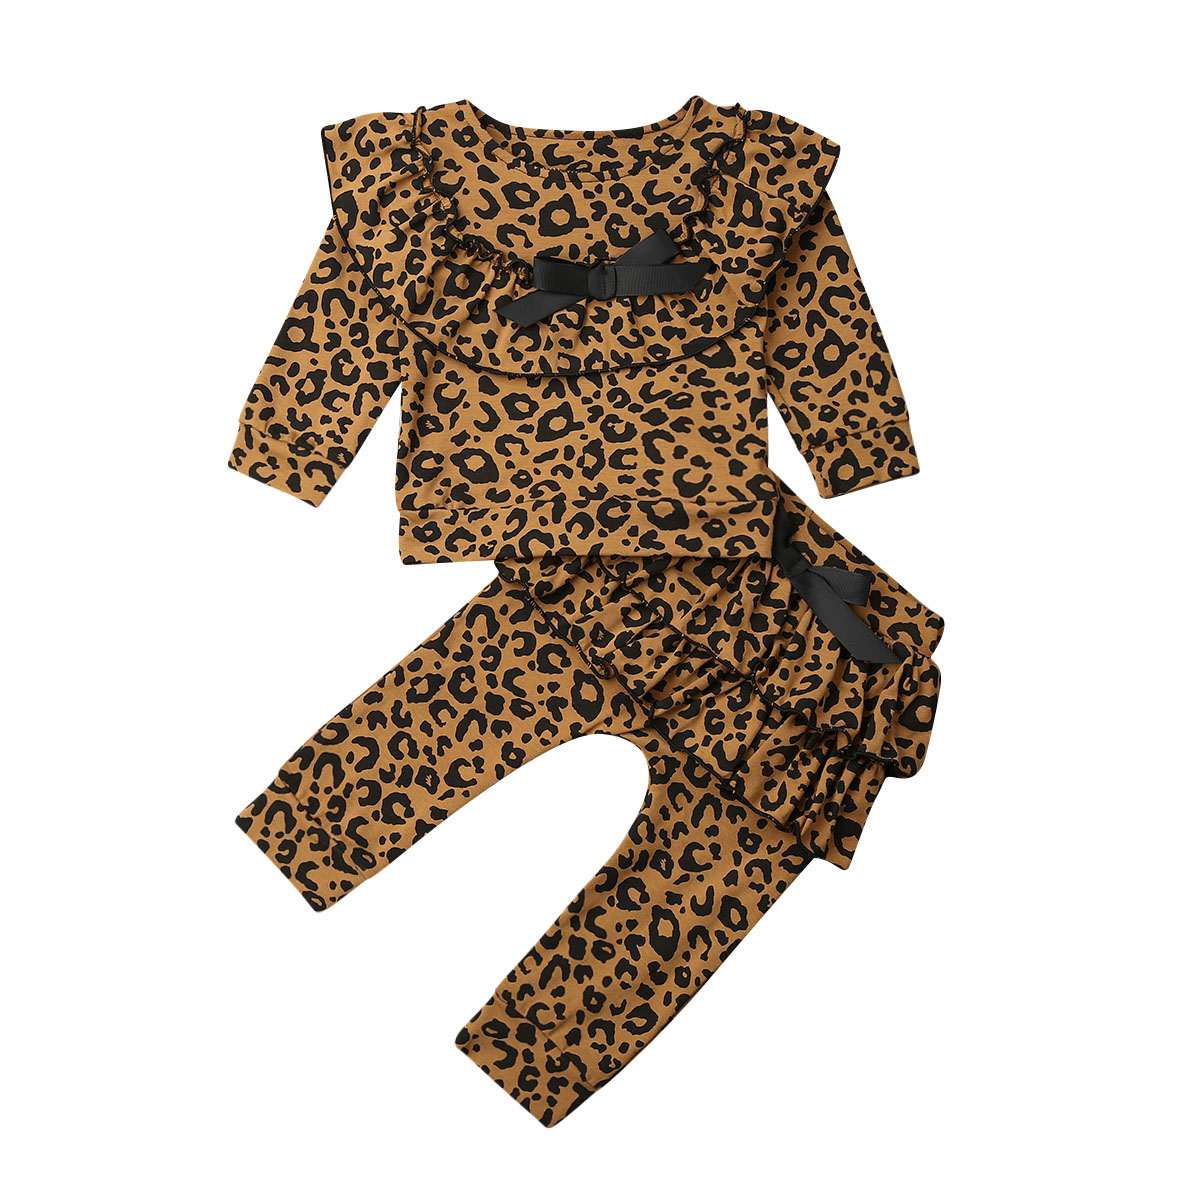 Toddler Baby Fall Clothes Infant Girl Leopard Ruffle Tops Sweatshirt Long Sleeve T-Shirt Pants 2Pc Outfits